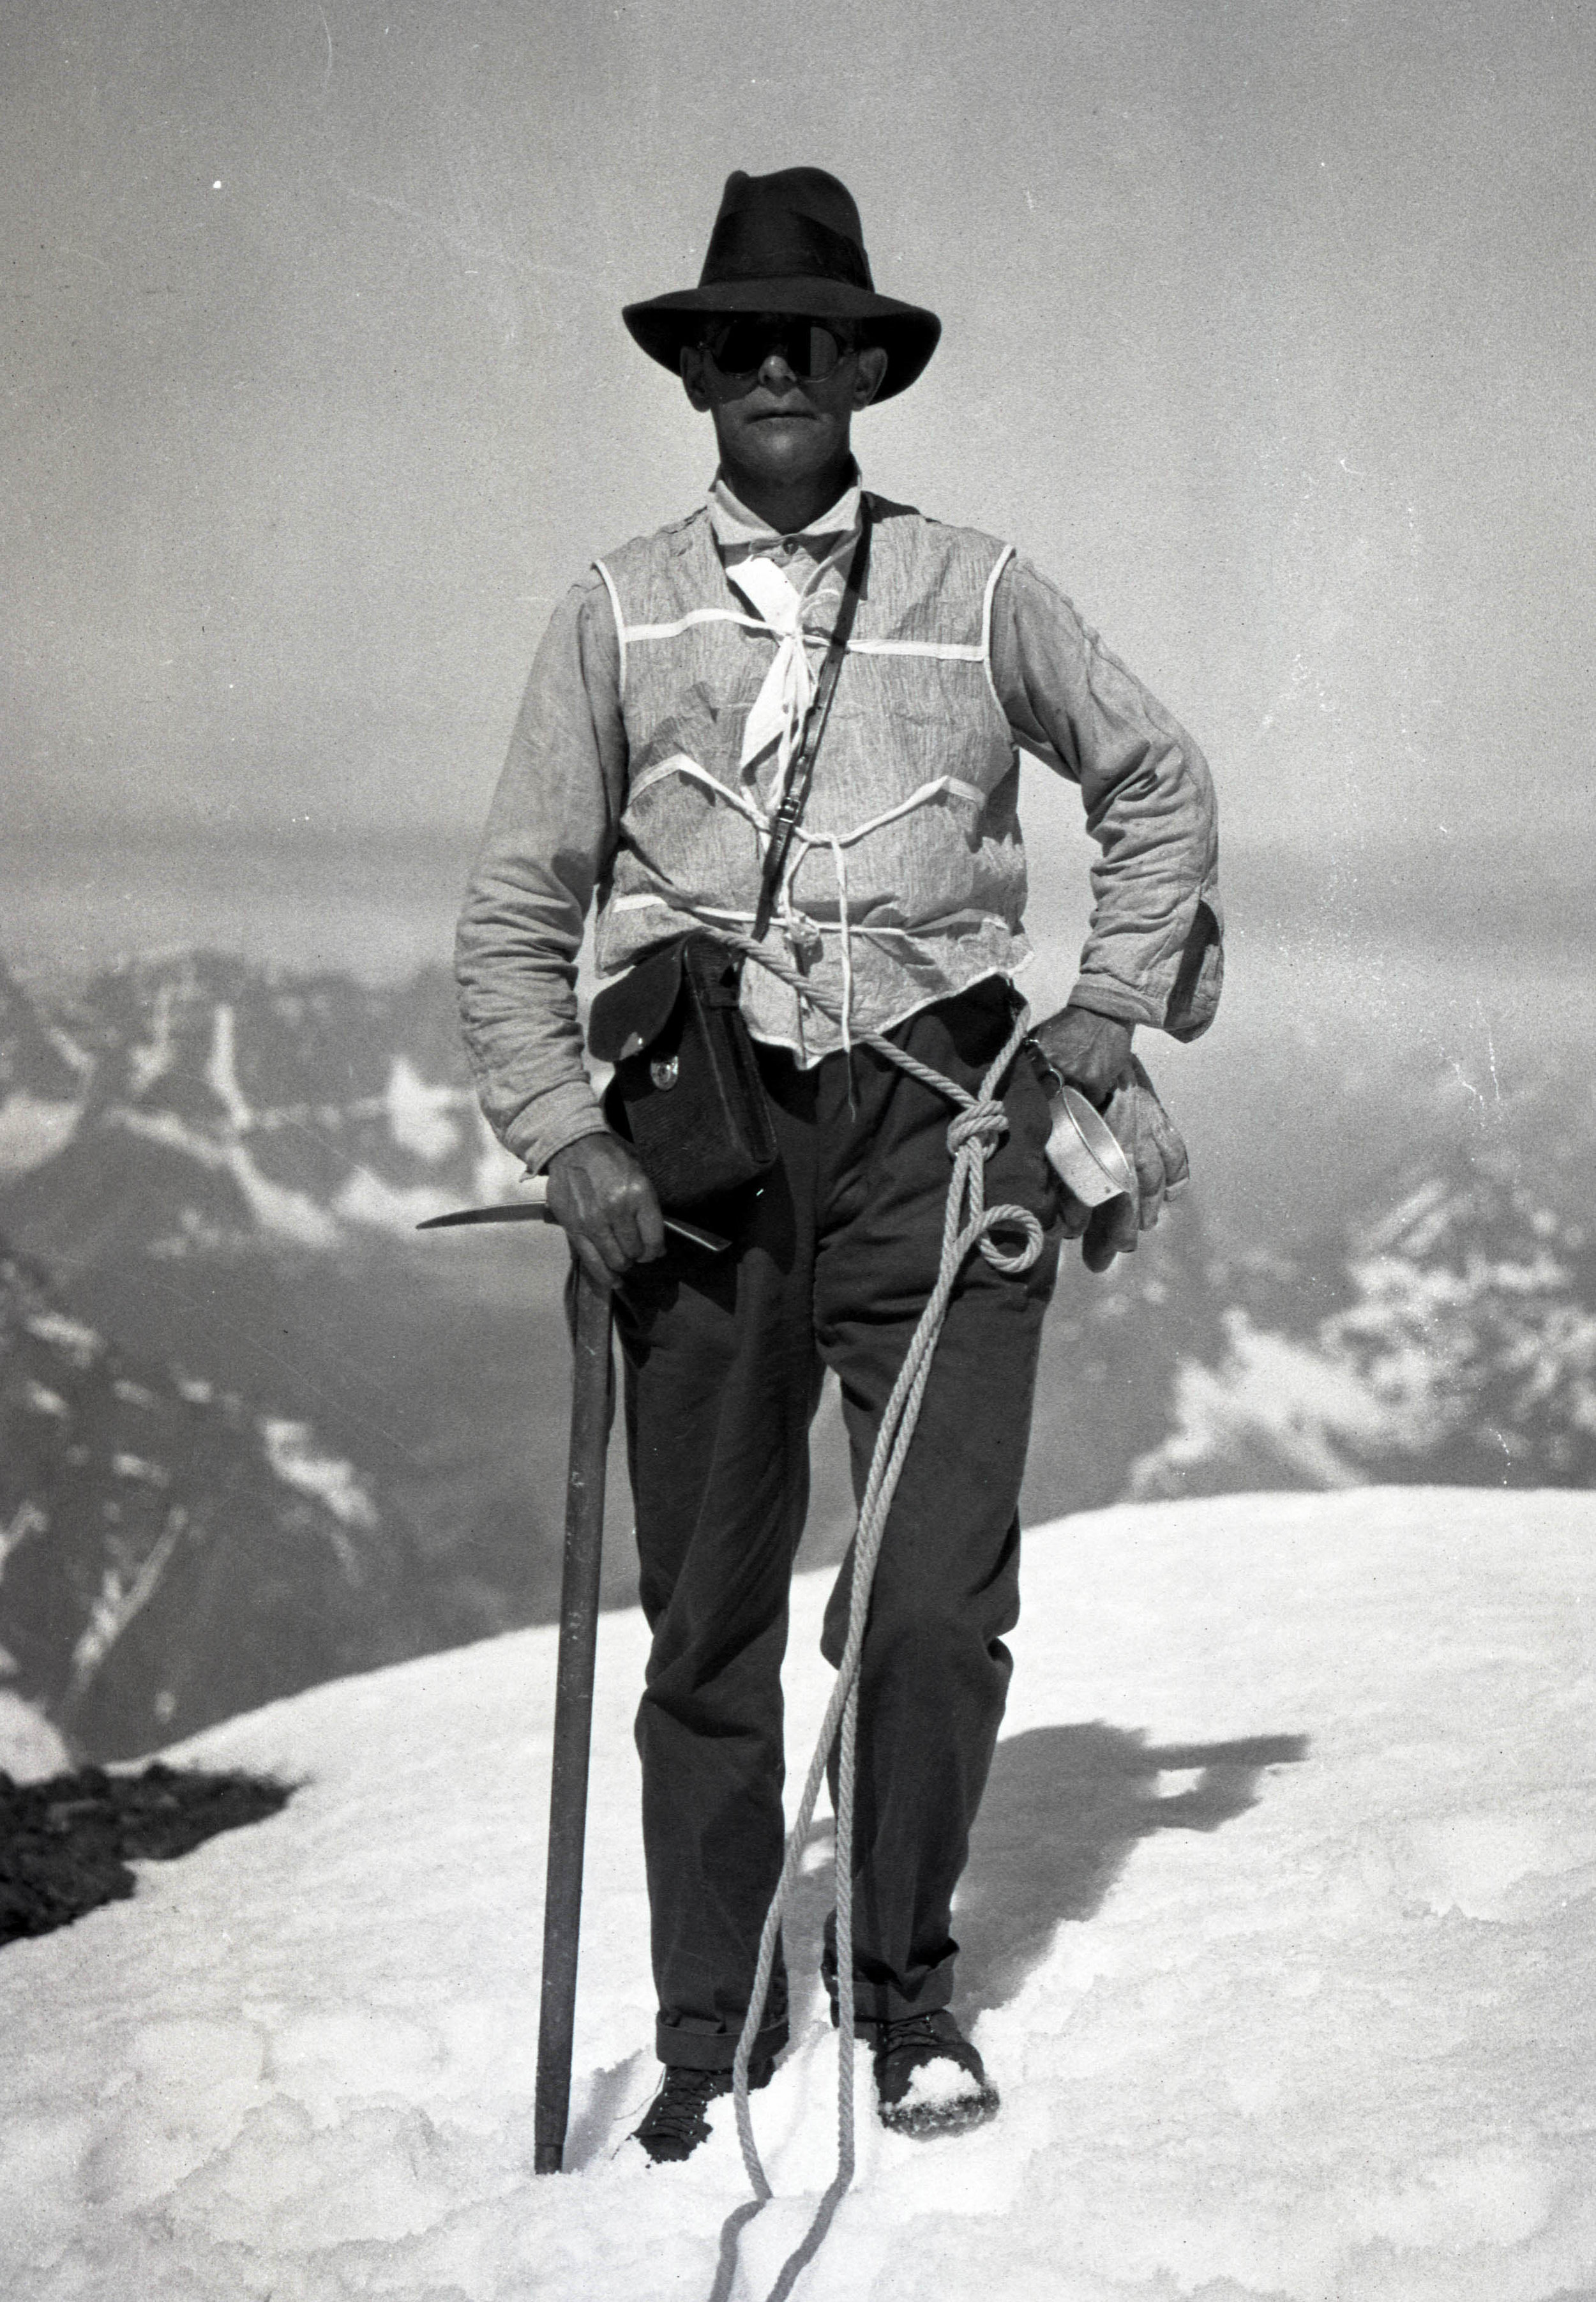 From the collections of the American Alpine Club